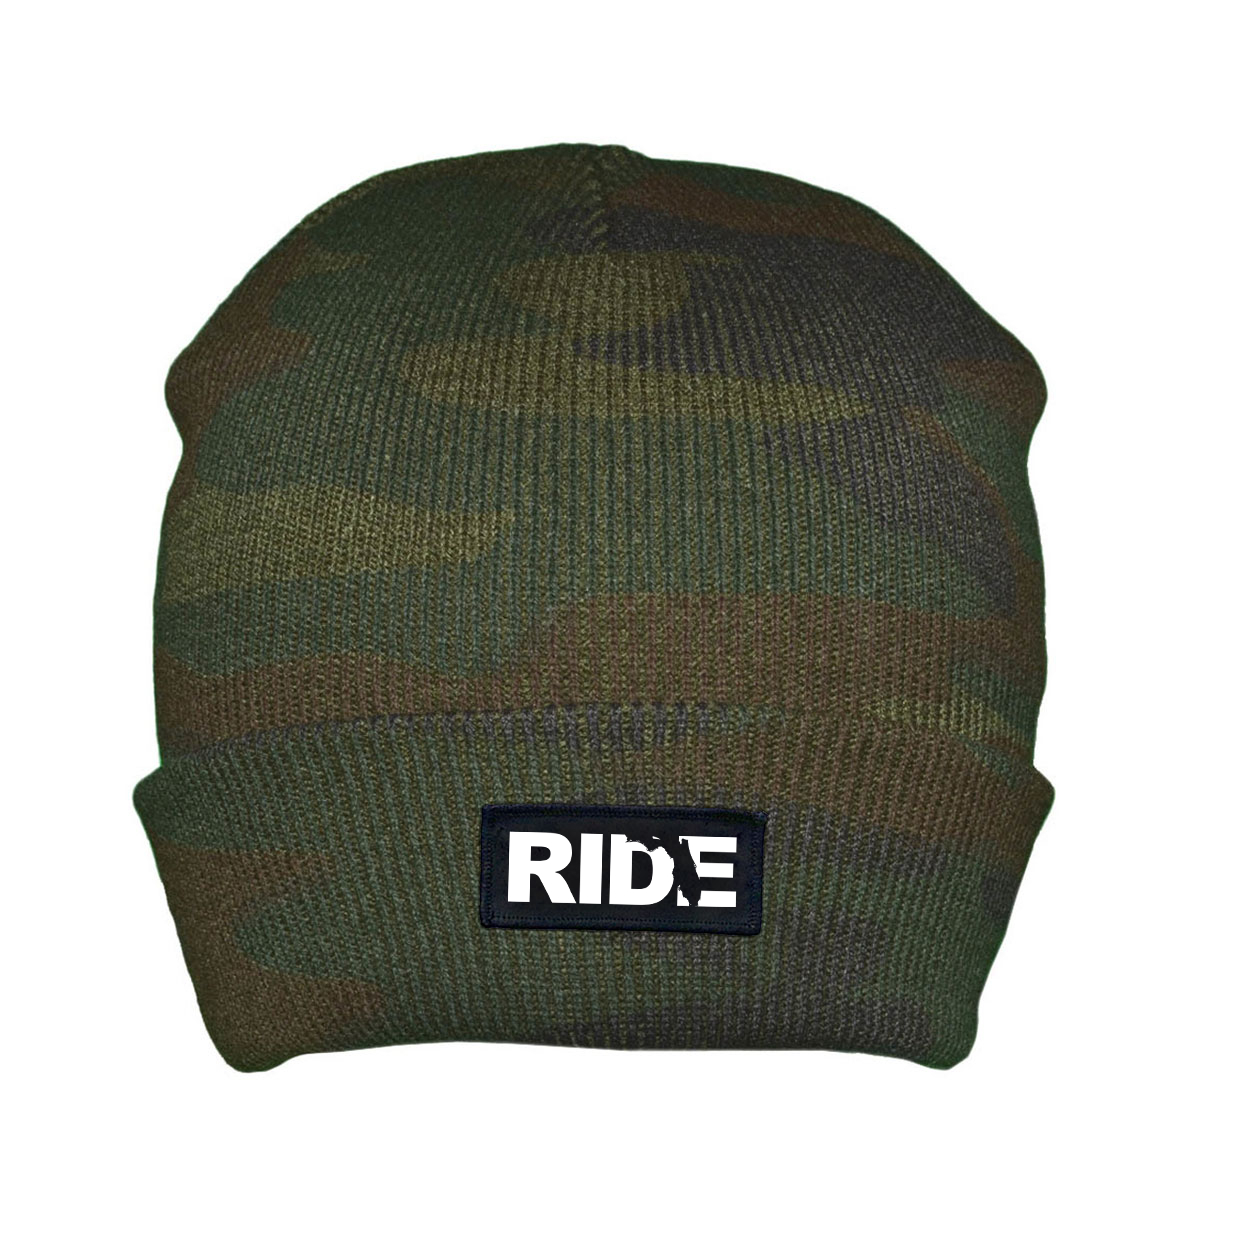 Ride Florida Night Out Woven Patch Roll Up Skully Beanie Camo (White Logo)